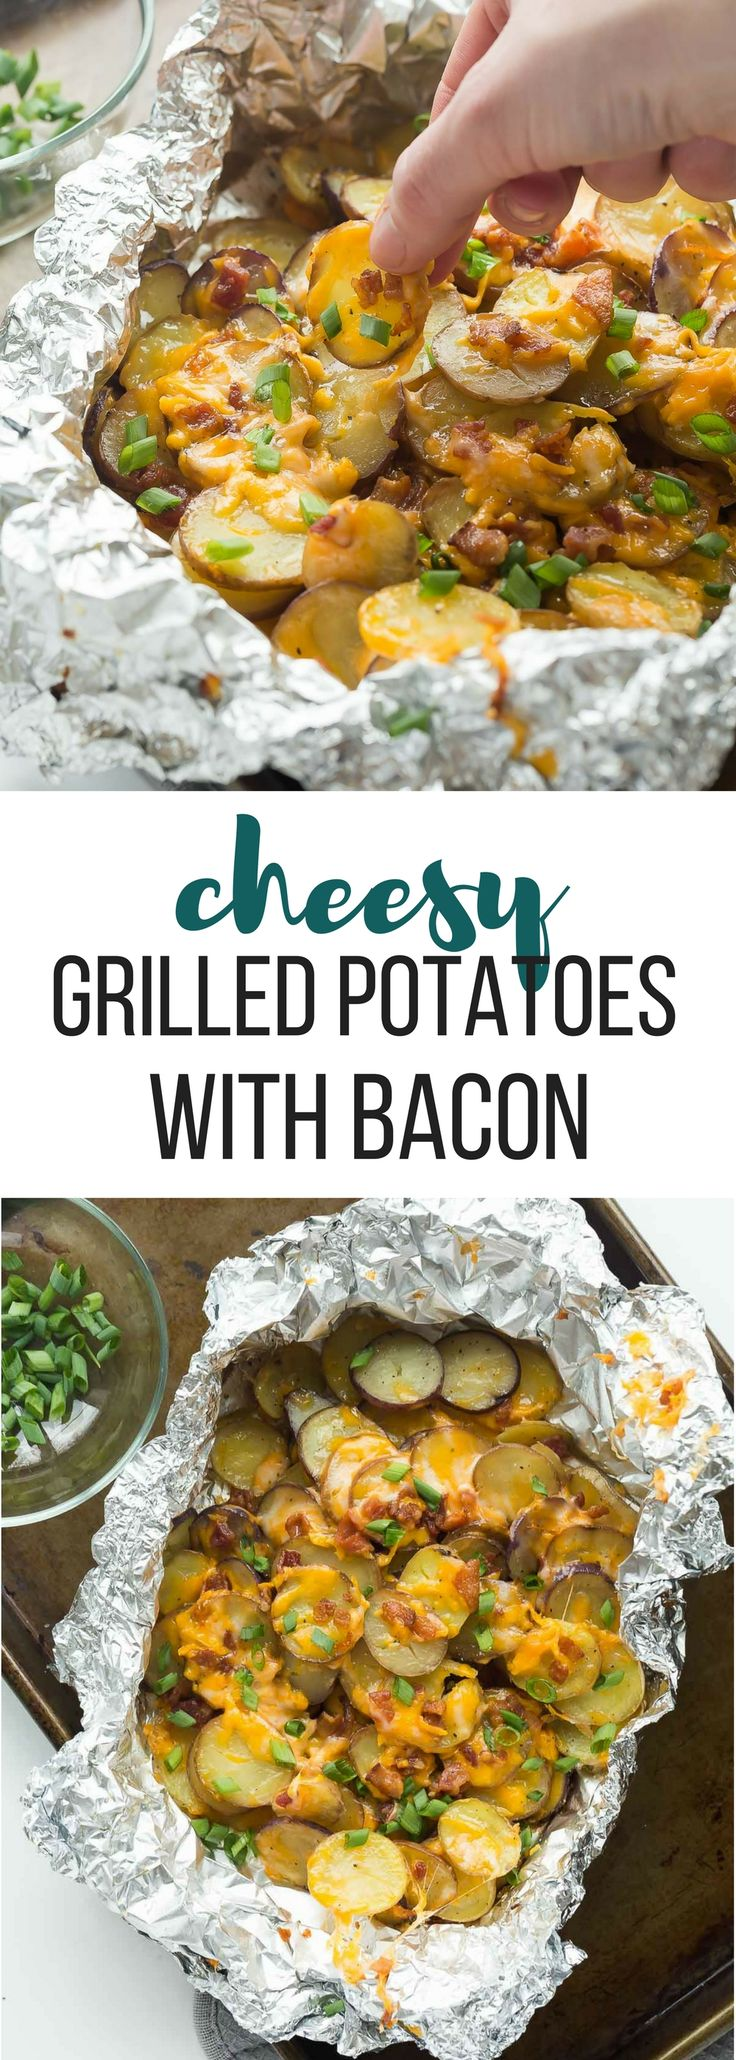 These Cheesy Grilled Potatoes with Bacon are an EASY foil pack side dish or appetizer for summer! Make it a full meal deal by adding extra veggies or chicken. Includes step by step recipe video. | grilled | grilling | side dish grill | barbecue | make ahead | prep ahead | summer